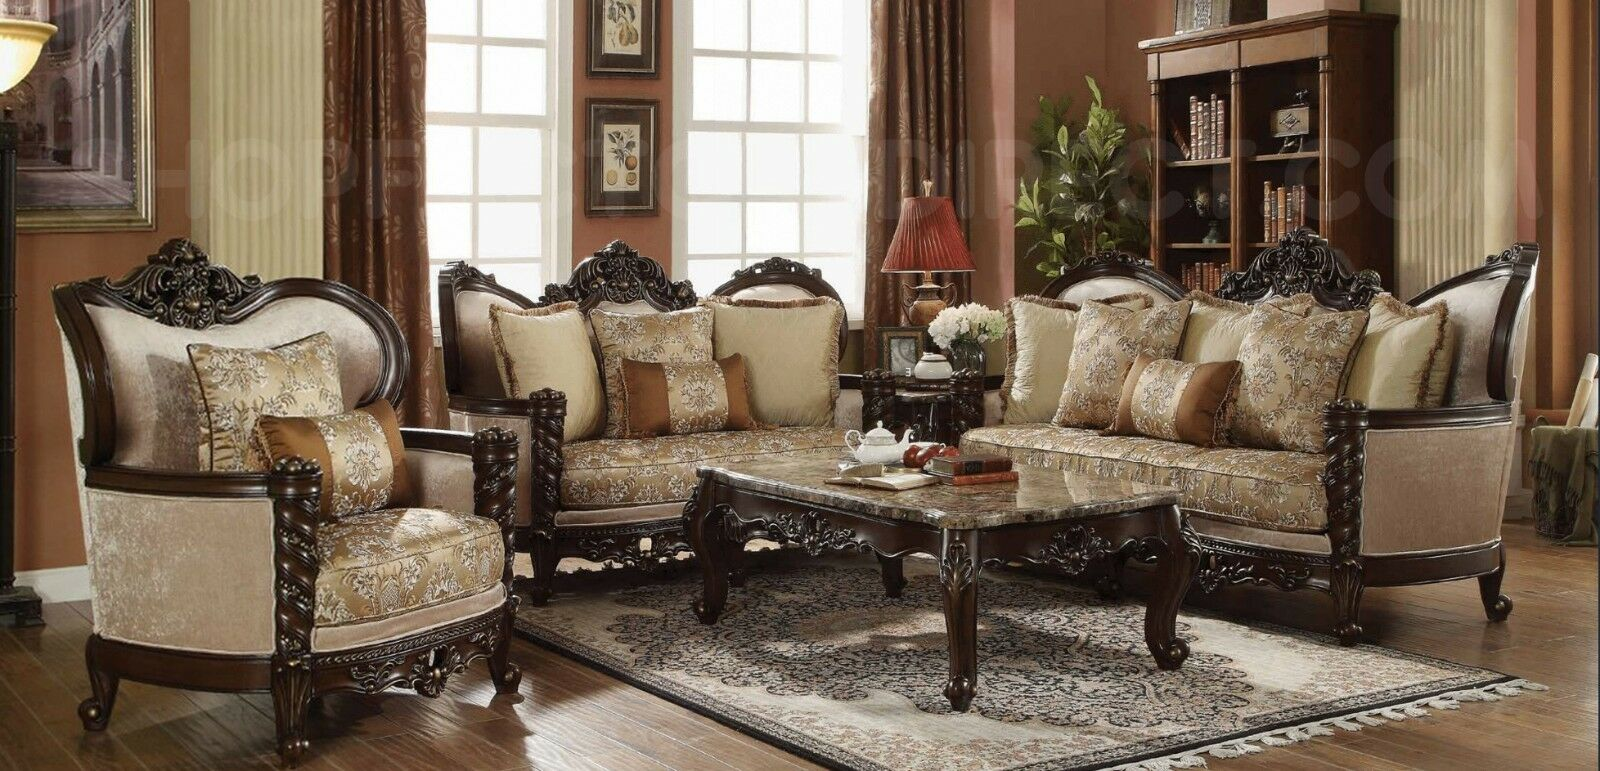 Traditional Victorian Luxury Sofa Love Seat Formal Living Room Furniture Set Ebay